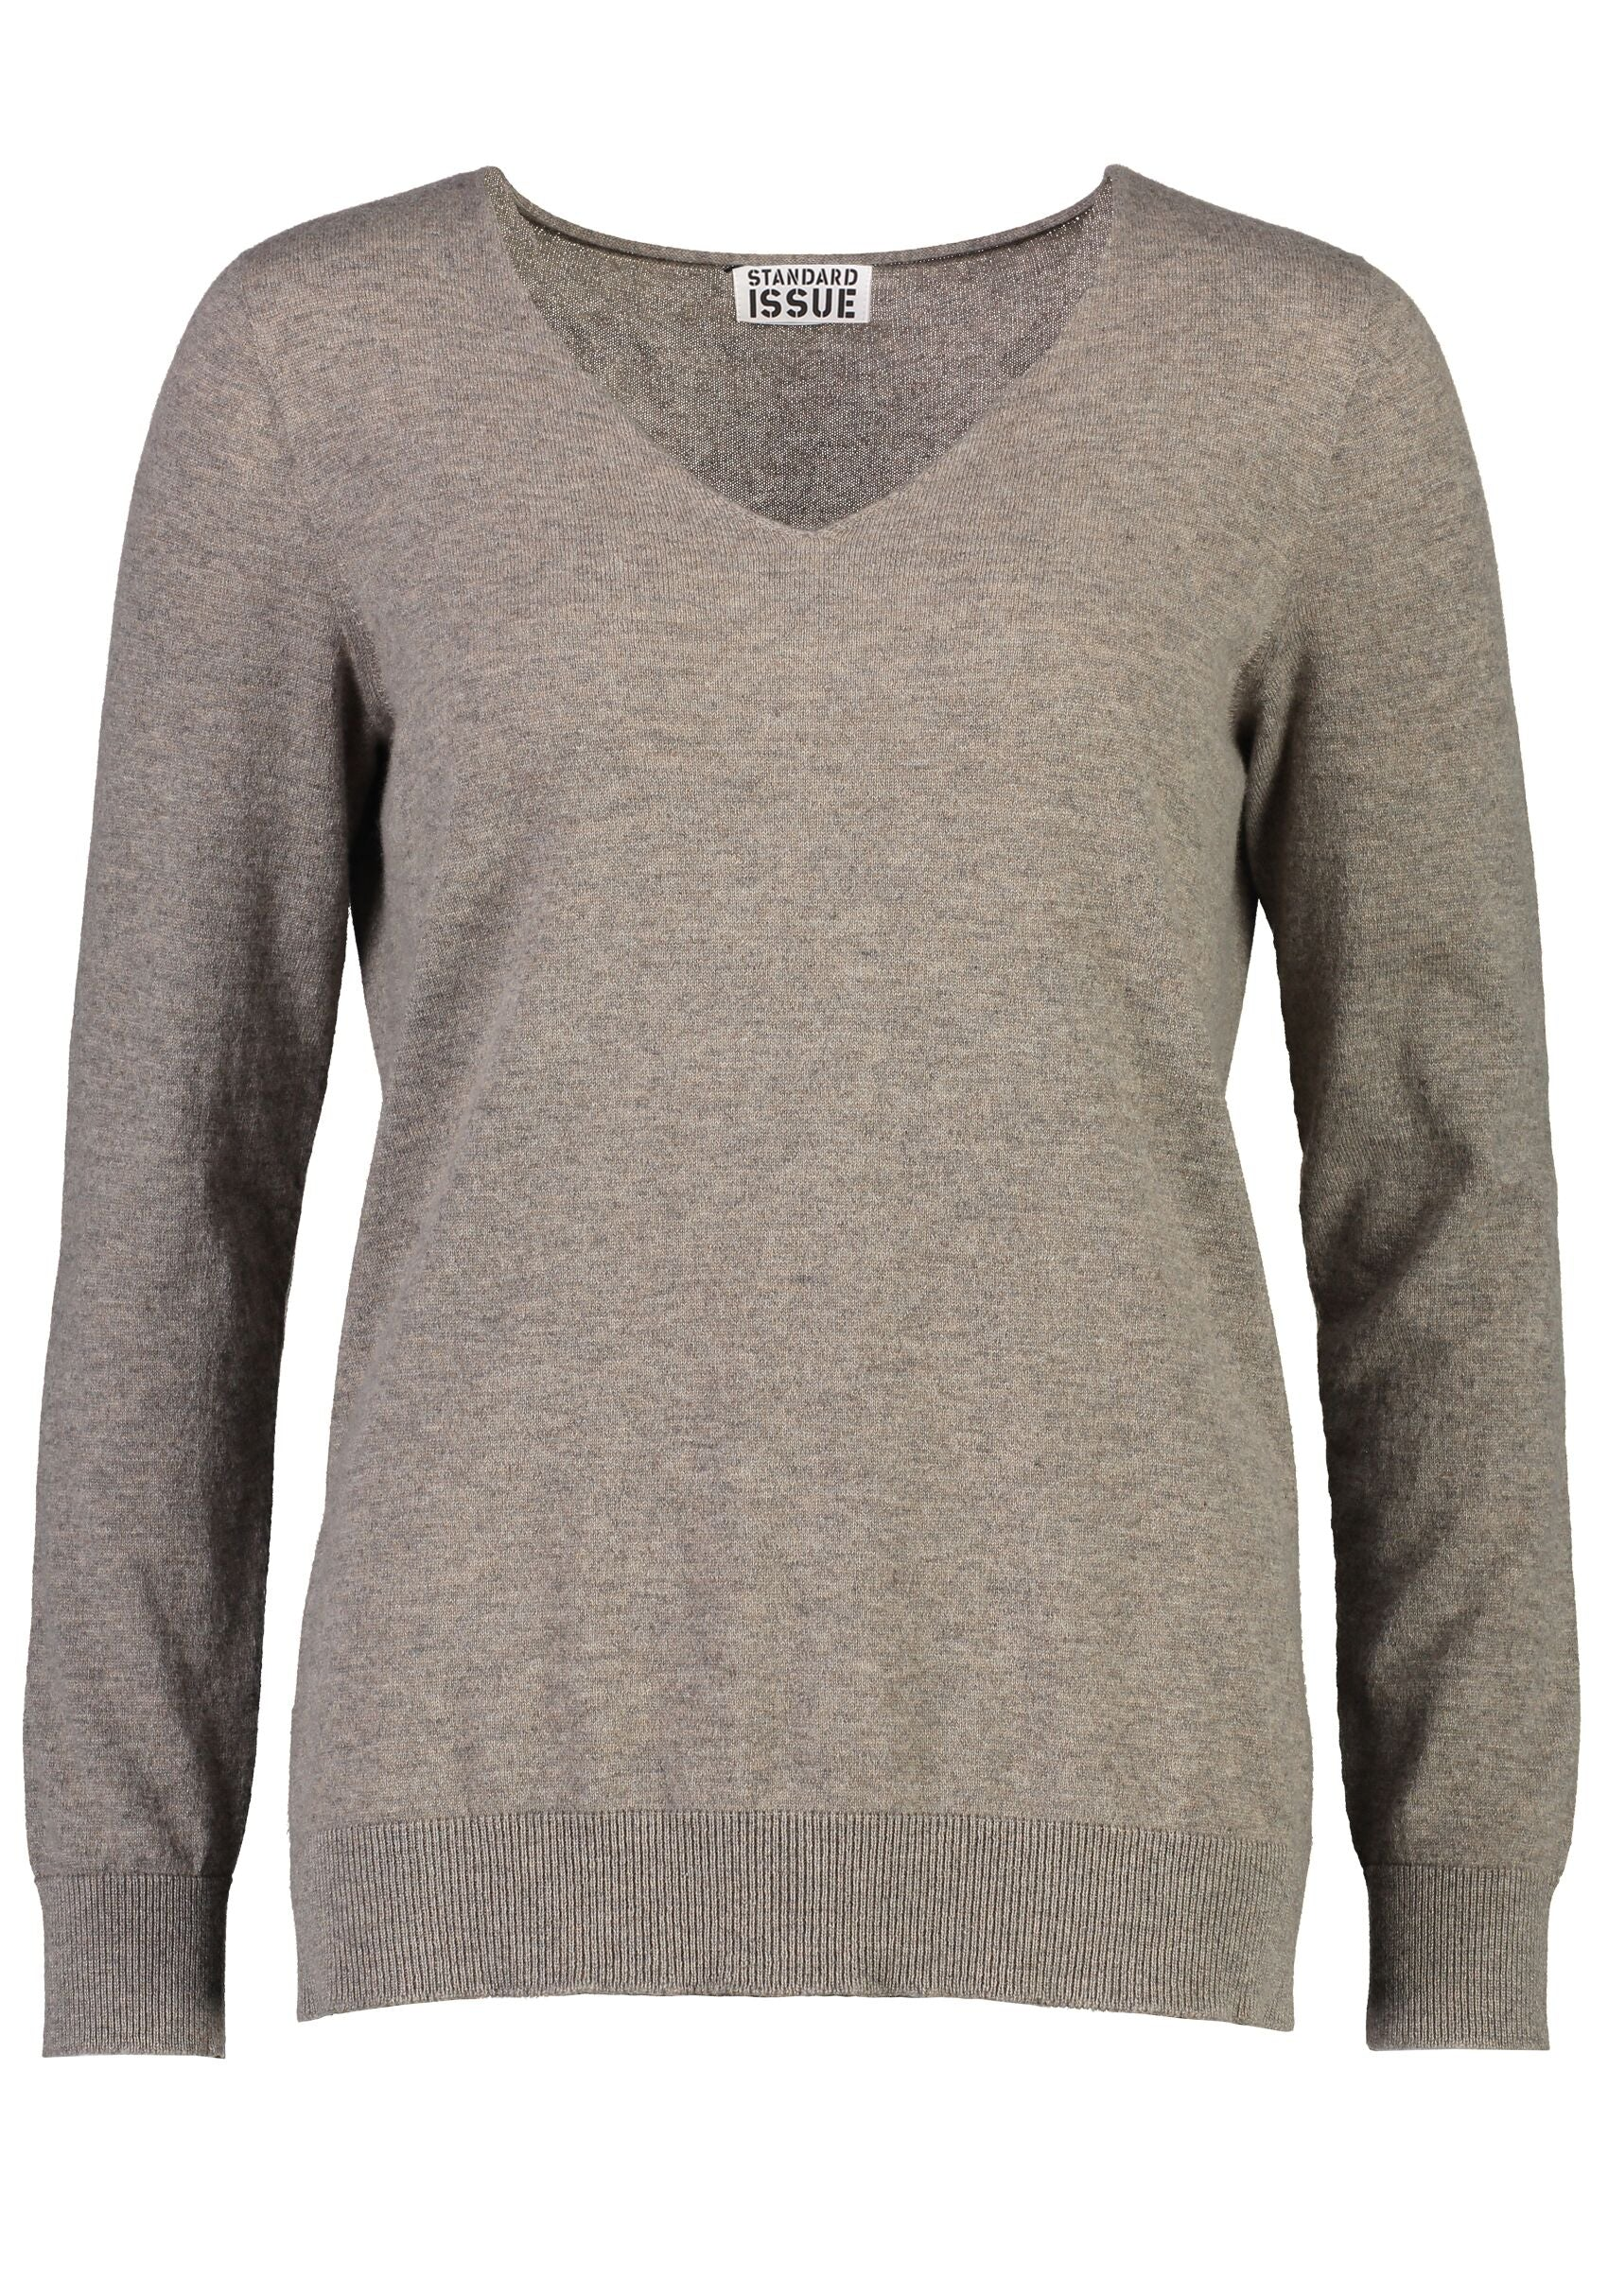 cheap for discount ba3a9 670f2 Standard Issue Cashmere V Neck - Peppercorn